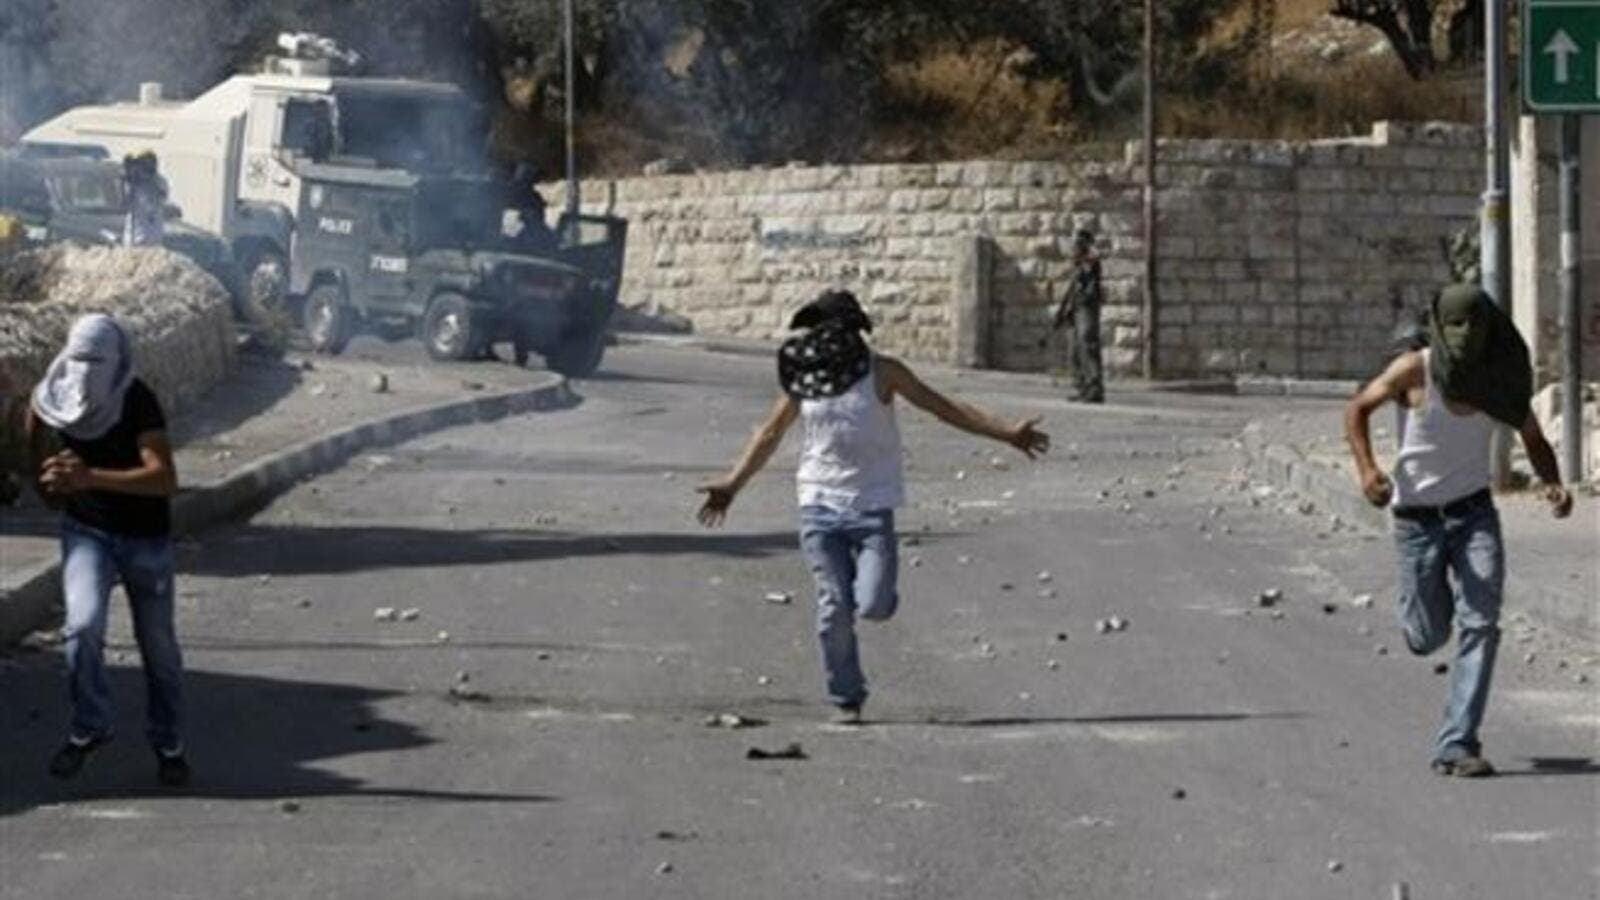 alestinian stone throwers and Israeli forces clash in the mostly Arab east Jerusalem neighbourhood of Silwan on October 15, 2010. Police in Jerusalem are systematically breaking the law by arresting stone-throwing children at night and interrogating them without their parents, an Israeli rights group said on December 15, 2010